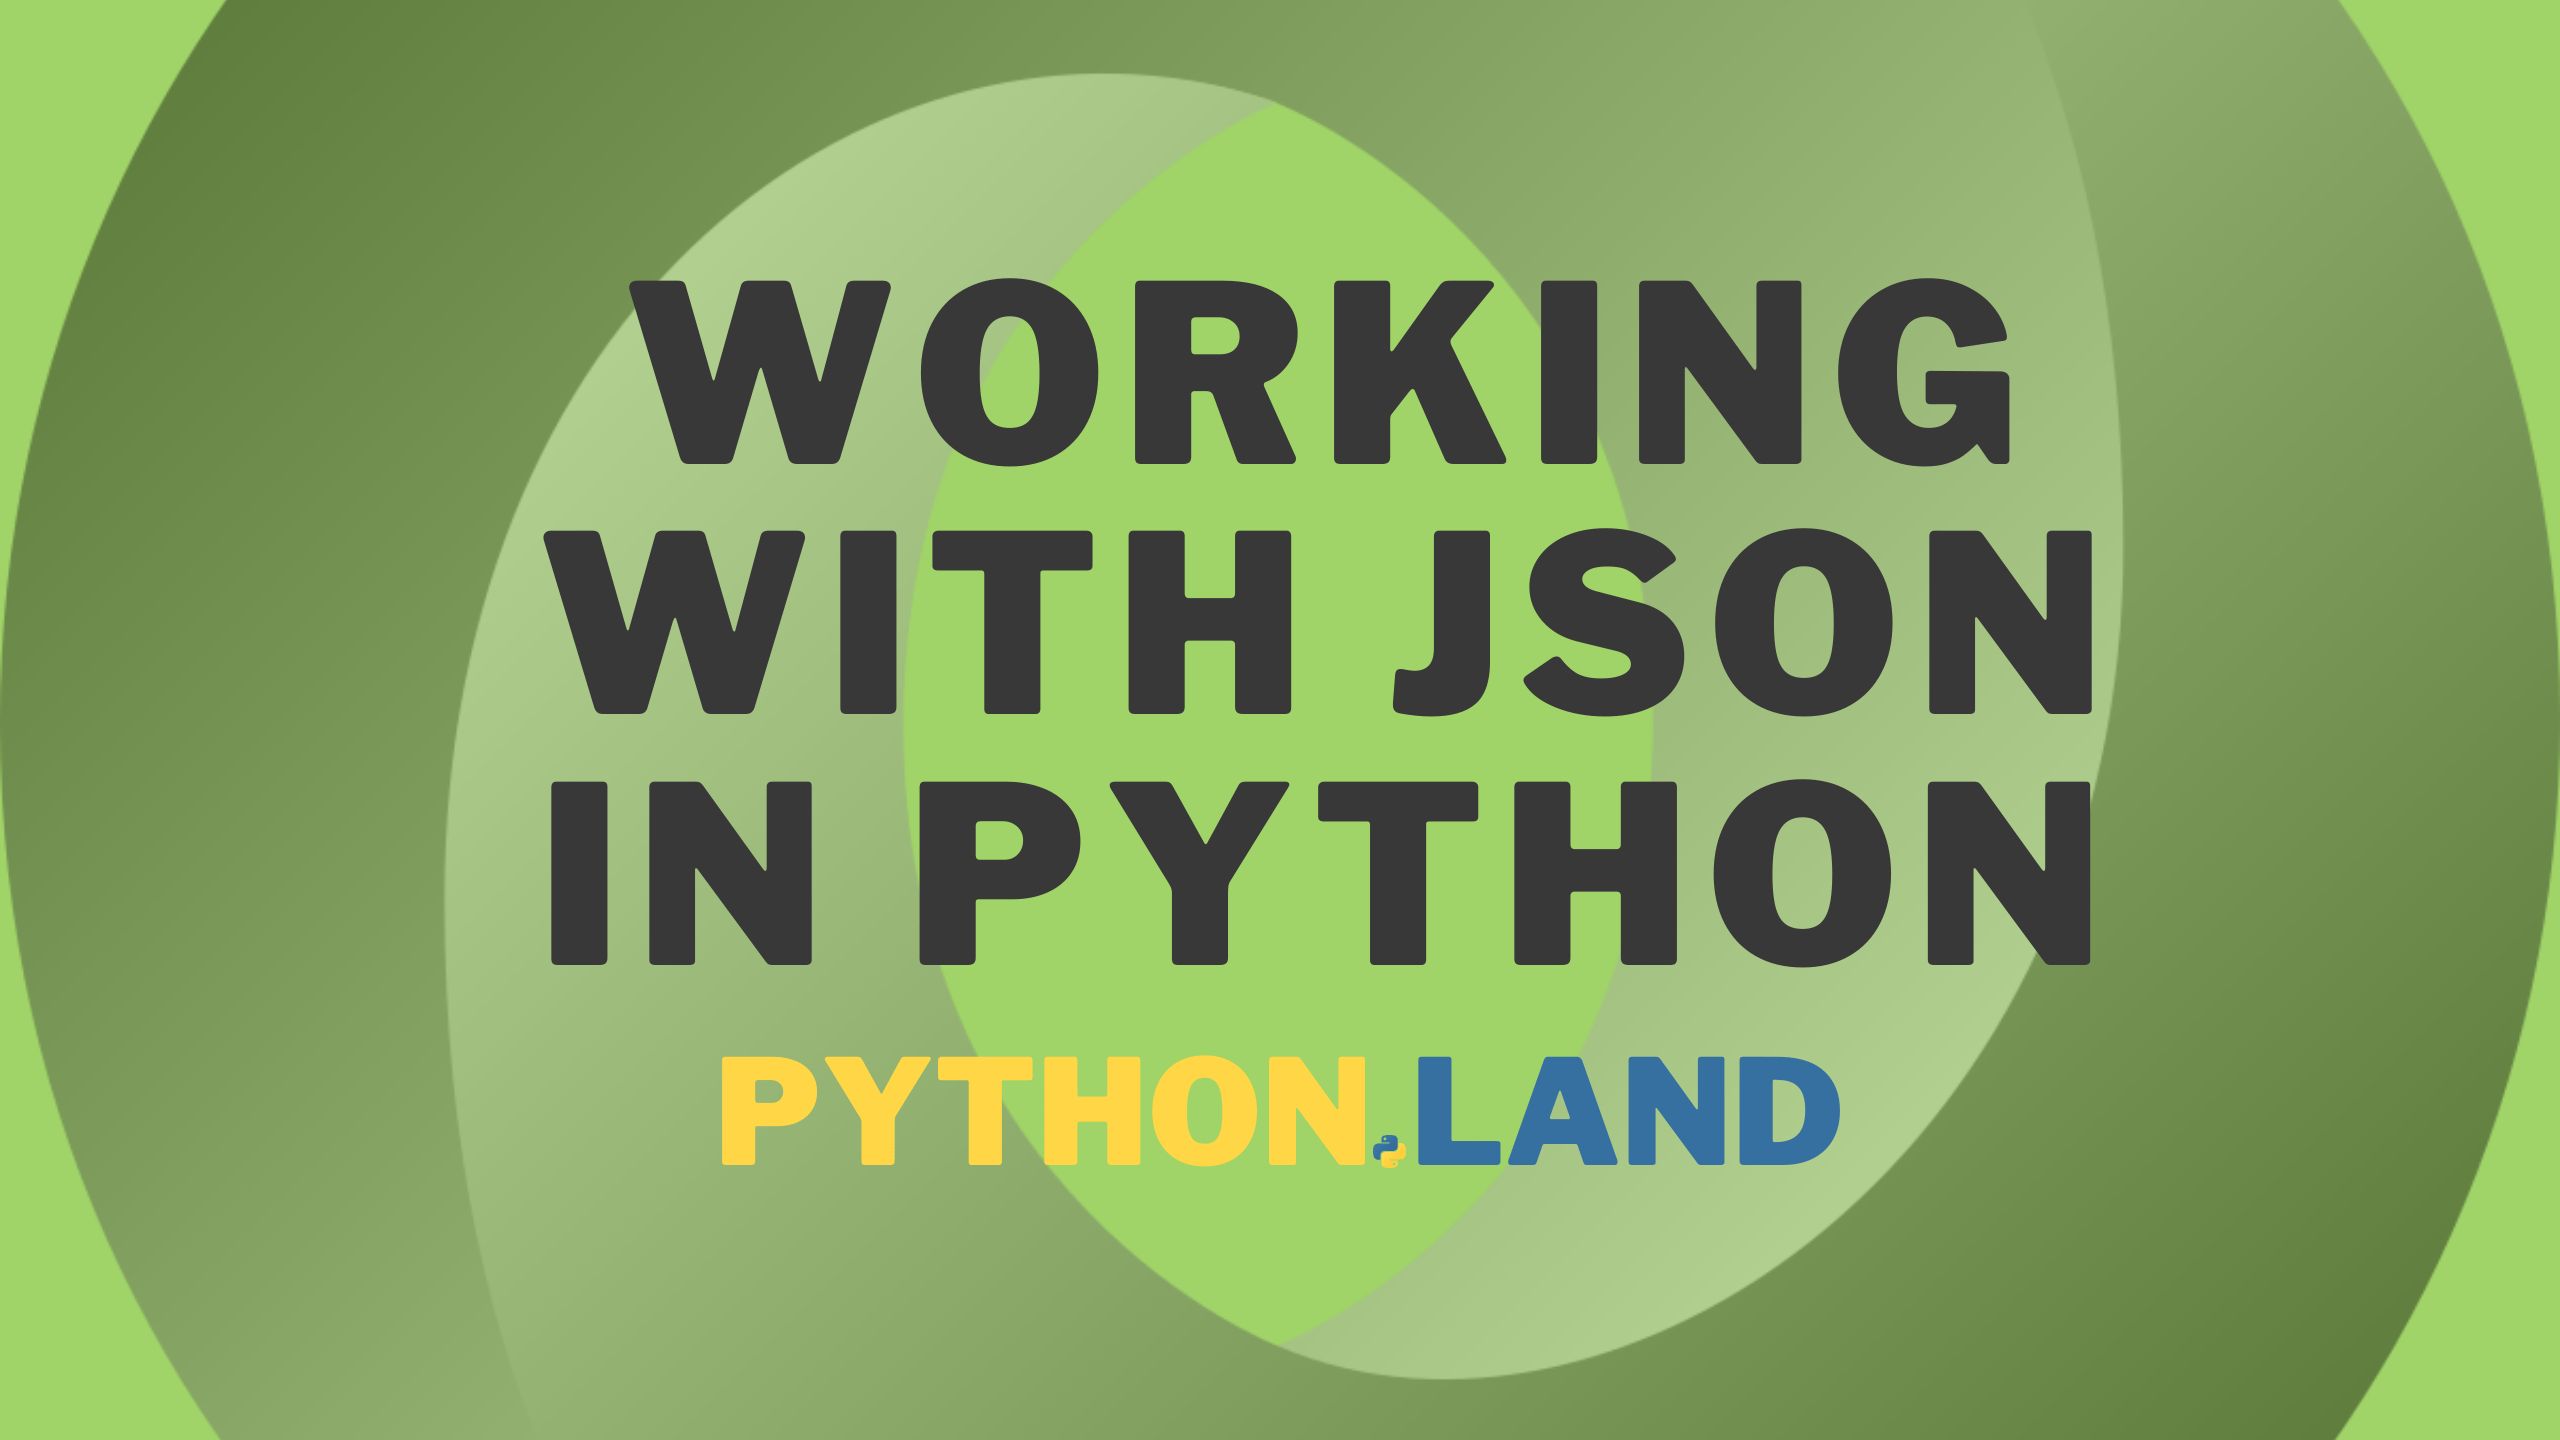 Working with JSON in Python